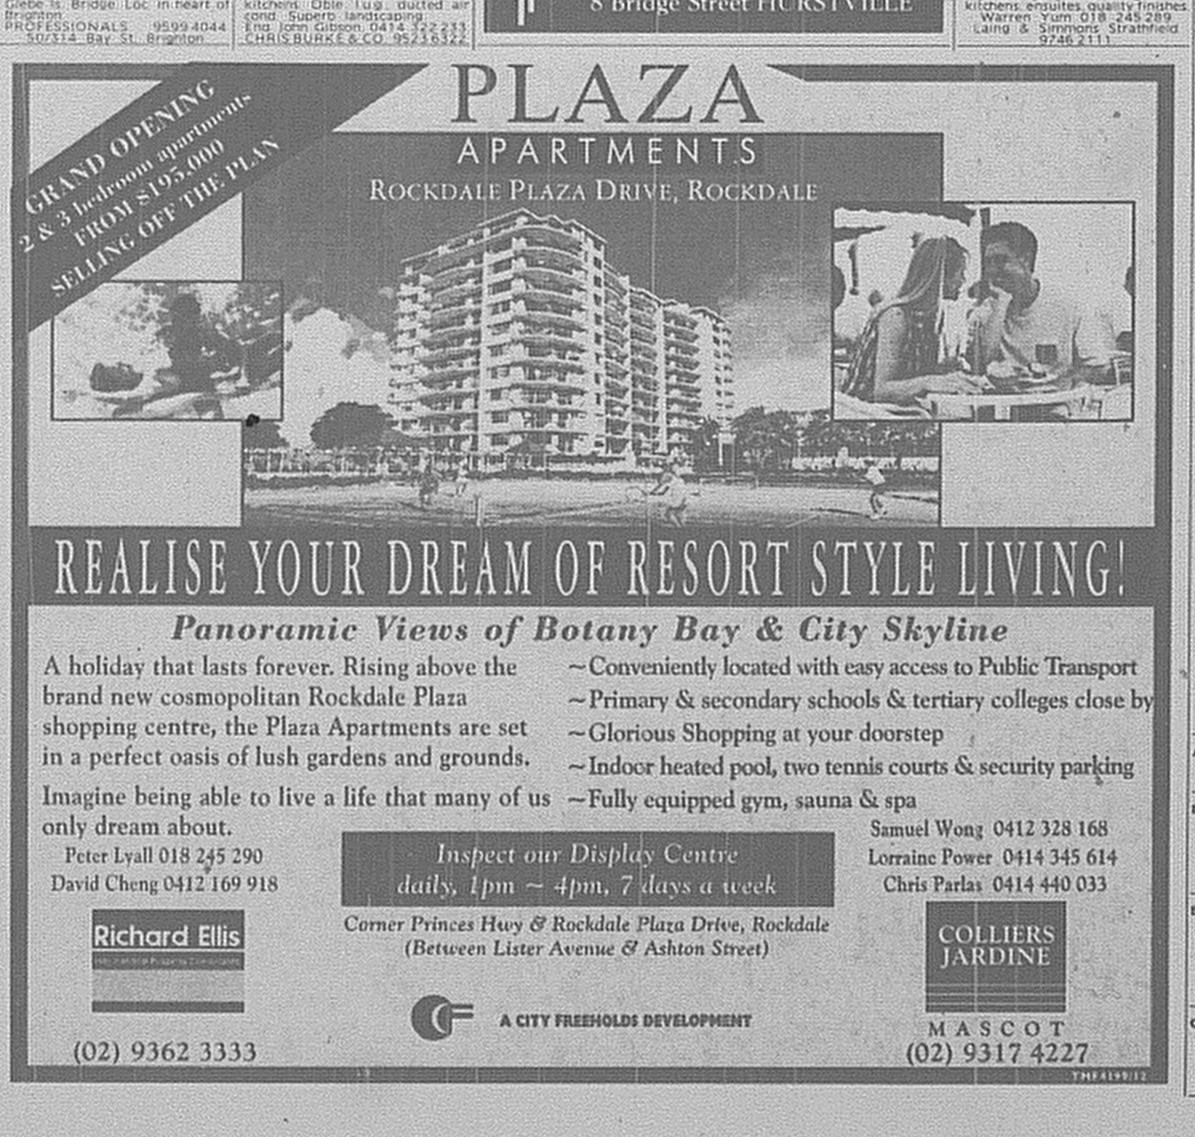 Plaza Apartments Rockdale Ad May 24 1997 SMH 27RE